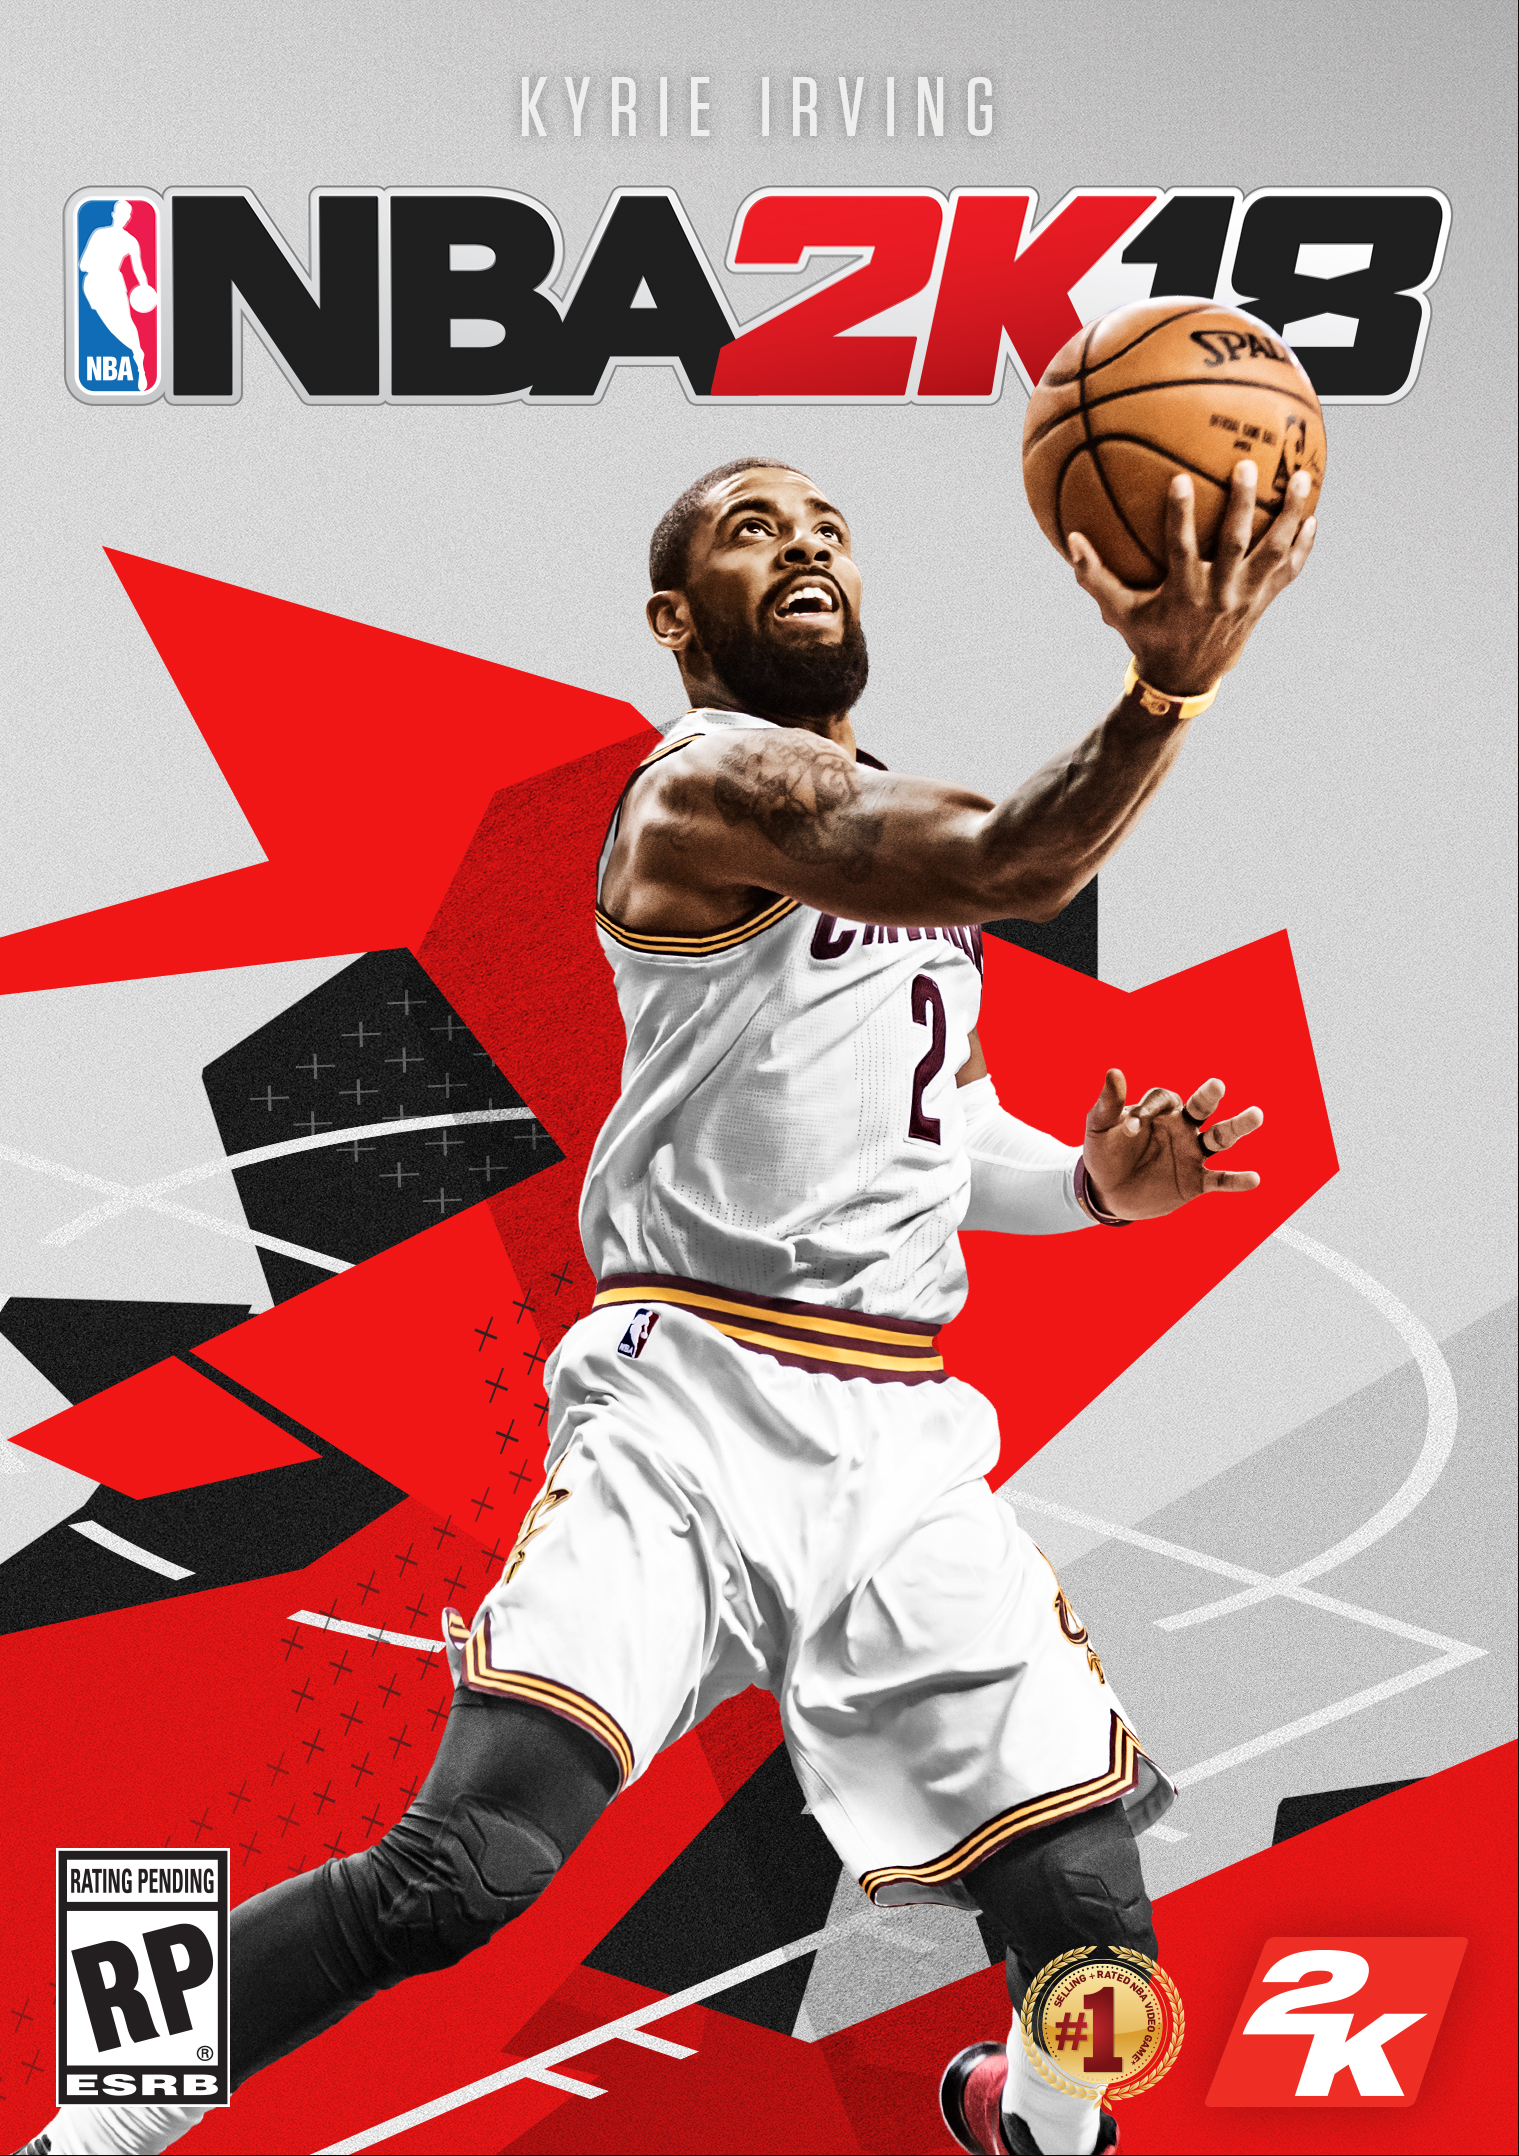 NBA 2K18 taps Cleveland's Kyrie Irving for cover fame - Polygon